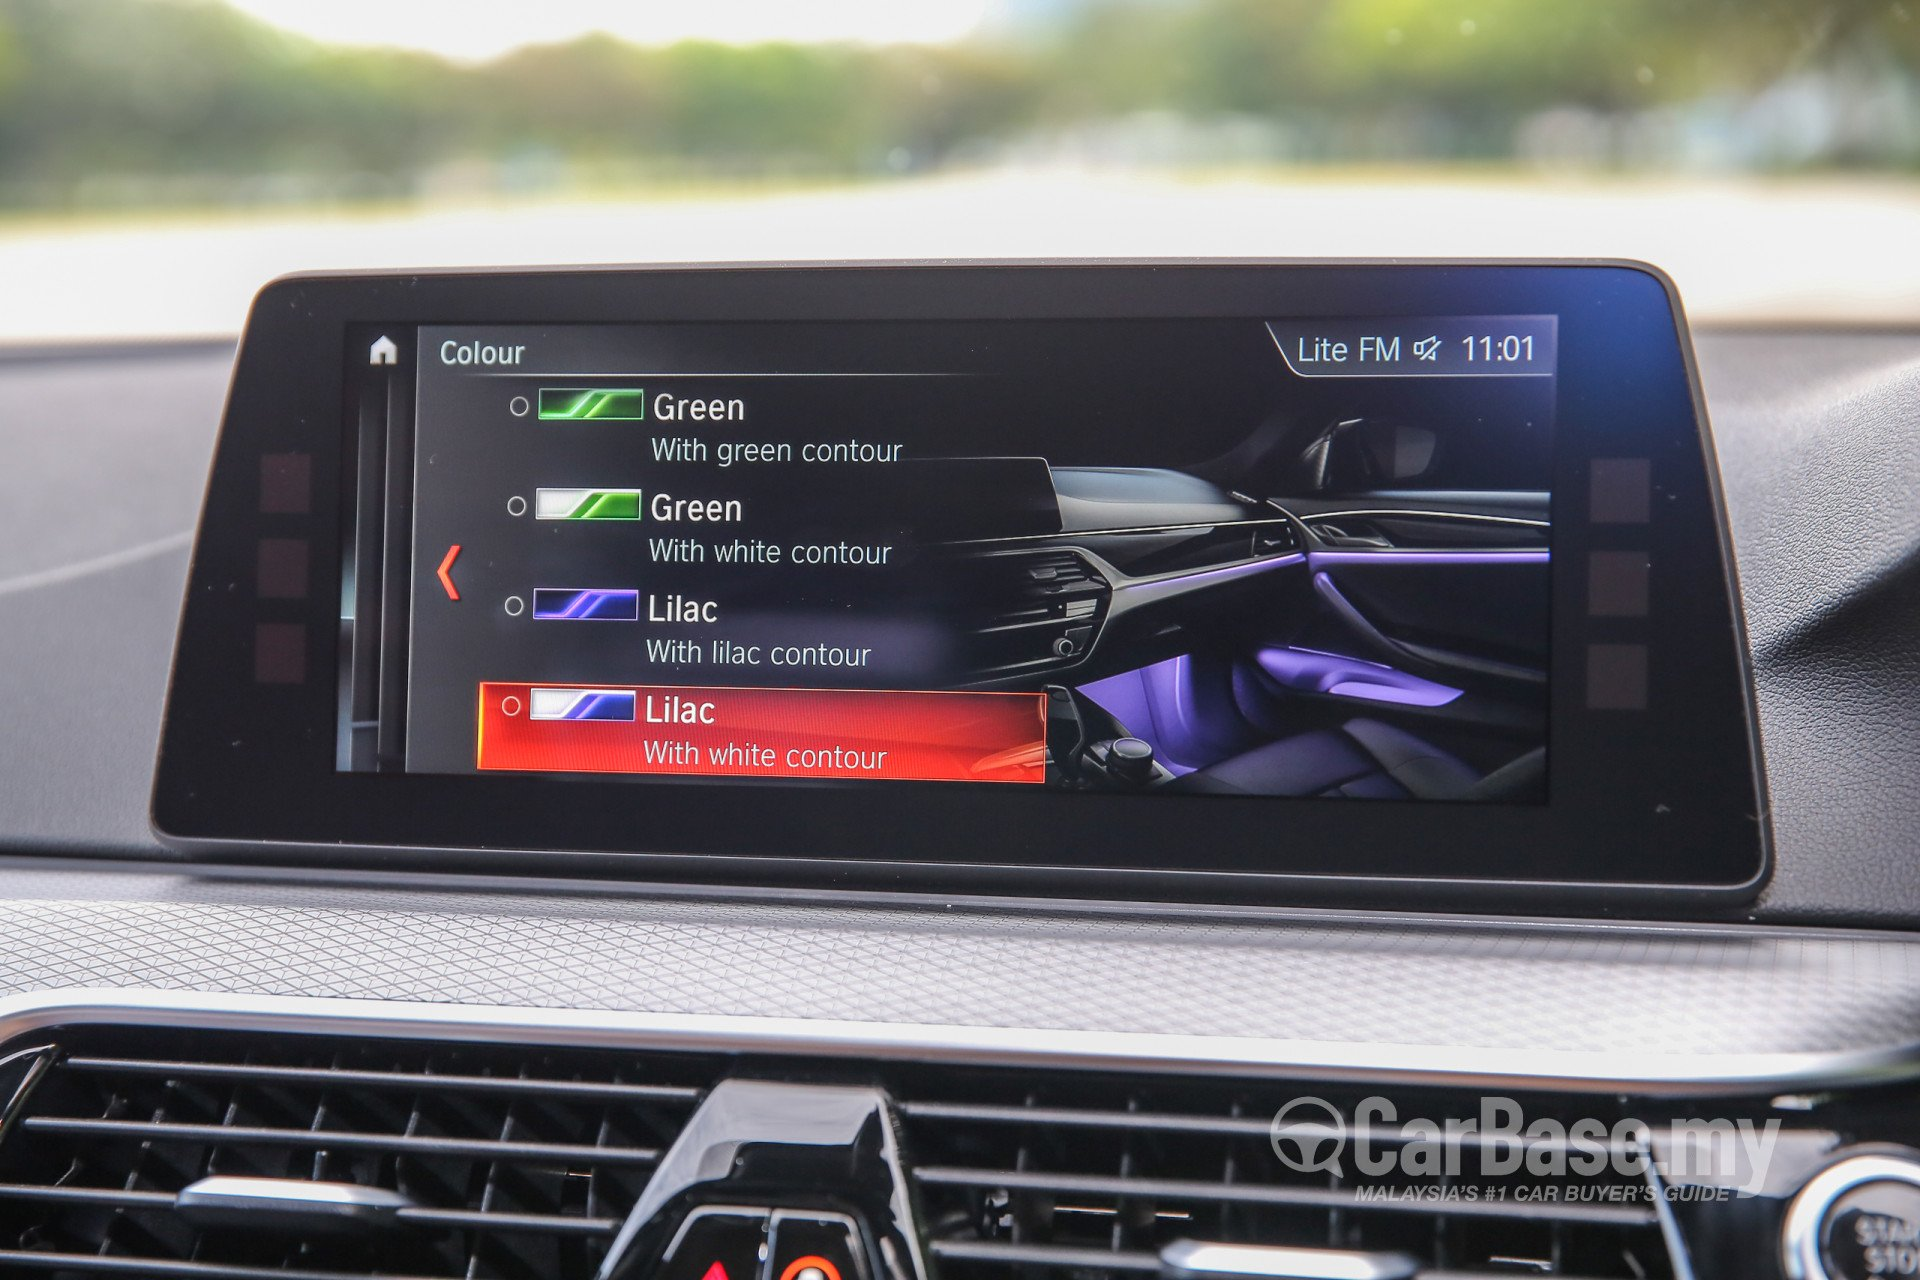 Bmw 5 Series G30 2017 Interior Image 38953 In Malaysia Reviews Specs Prices